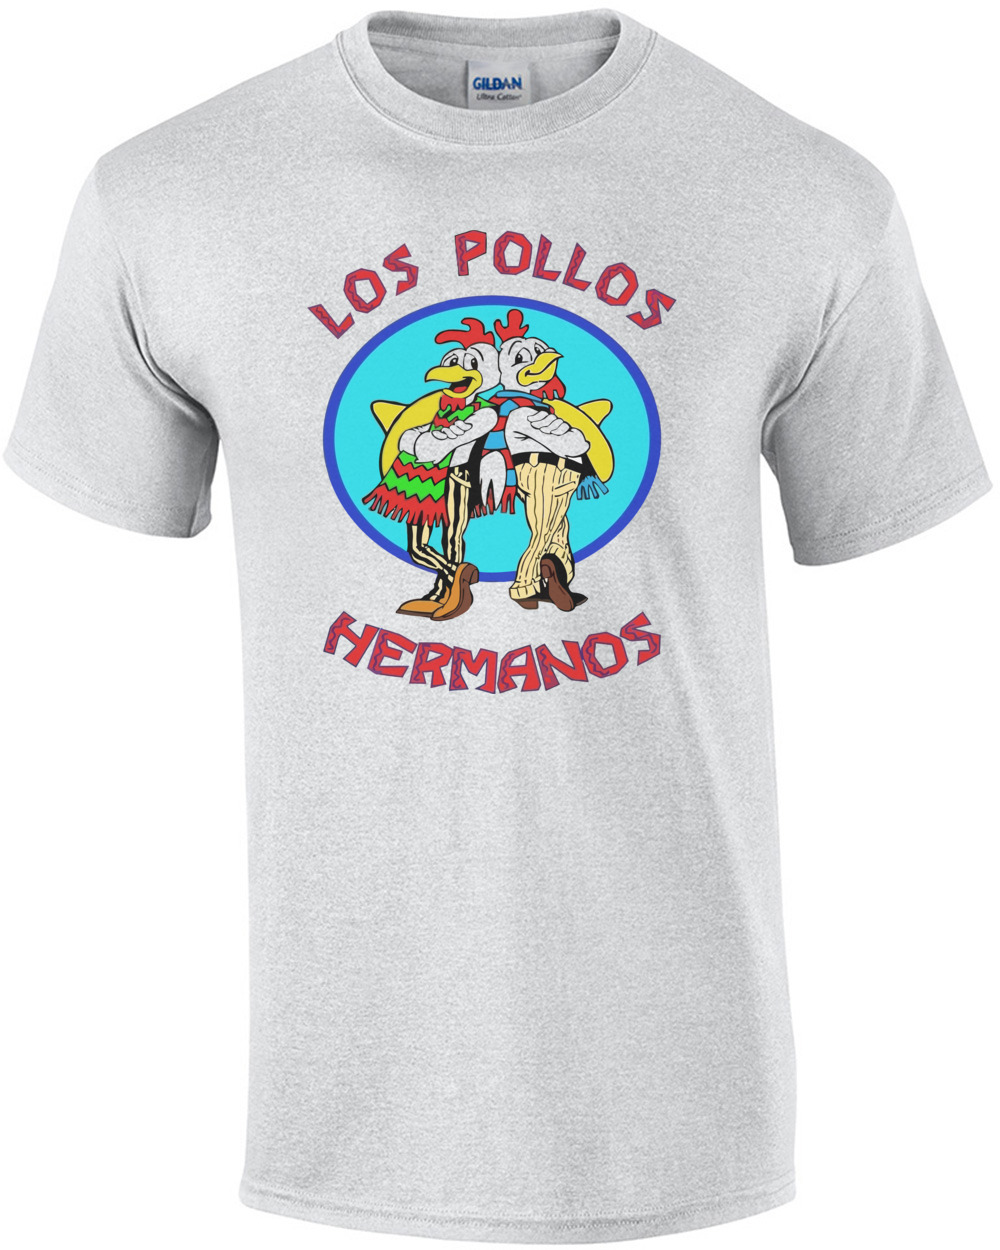 739945b1 Los Pollos Hermanos Breaking Bad - Better Call Saul - Shirt